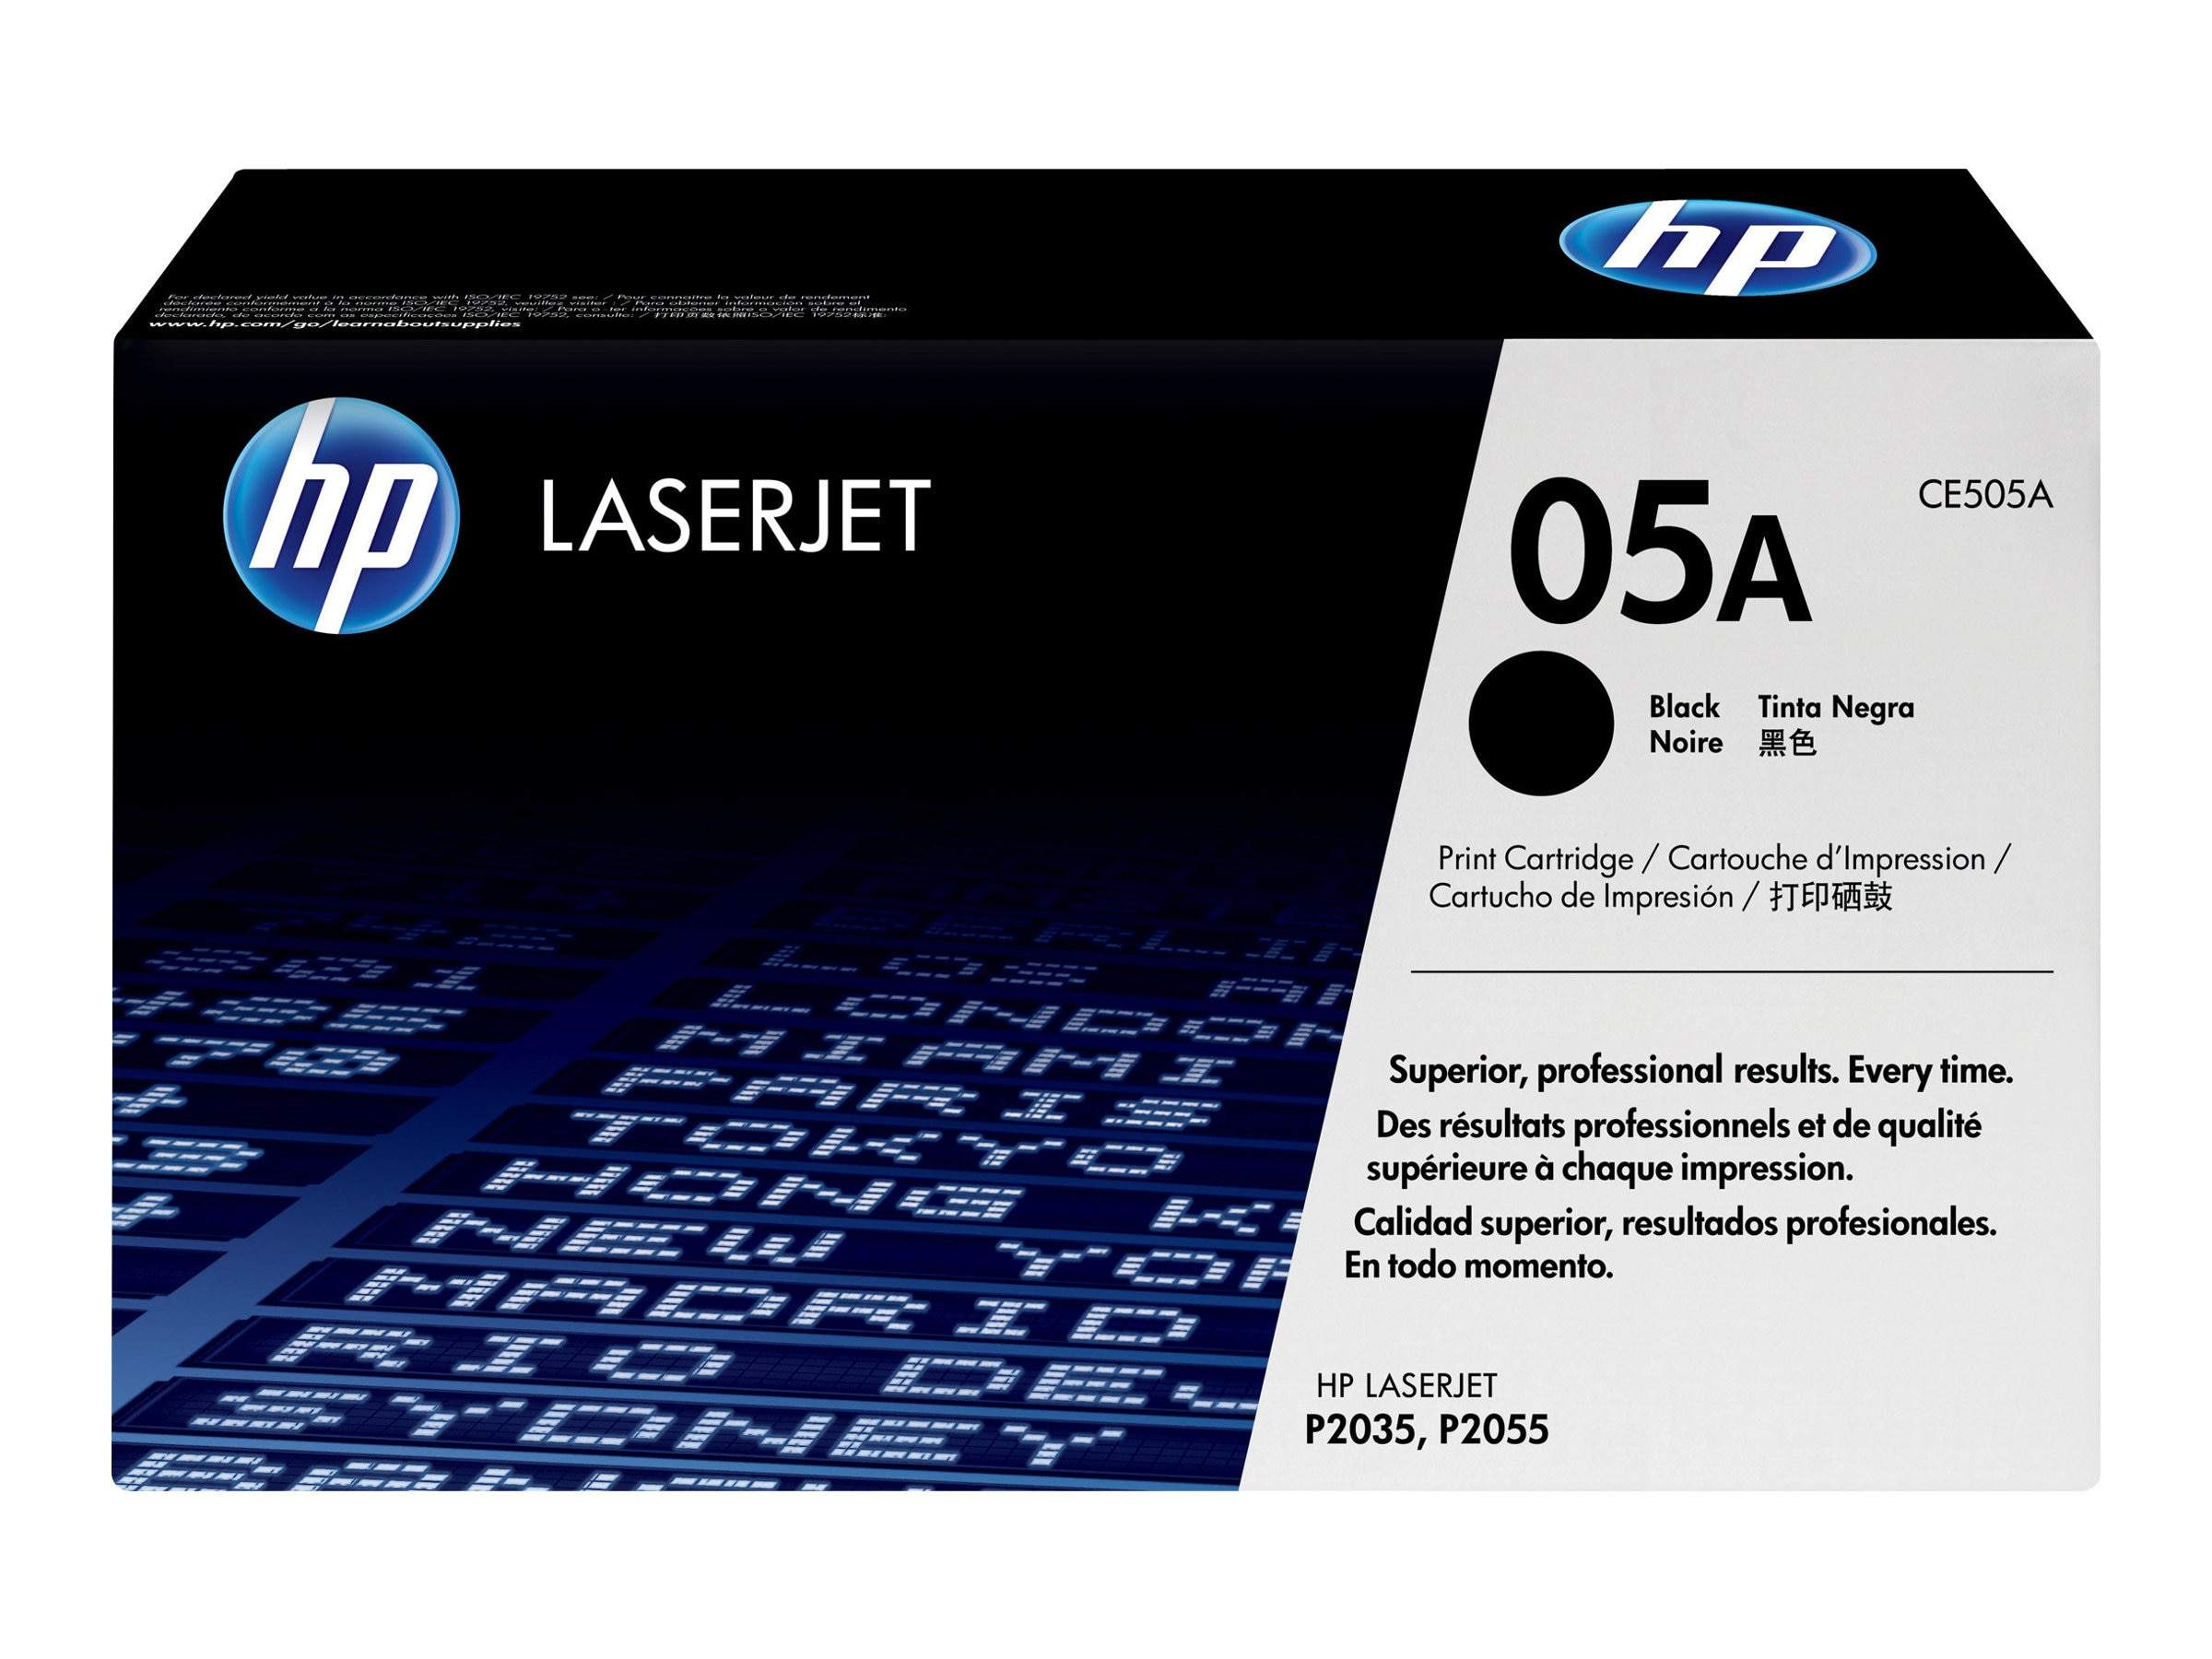 HP 05A (CE505A) Black Original LaserJet Toner Cartridge for HP LaserJet P2035 & P2055 Series Printers, CE505A, 8929025, Toner and Imaging Components